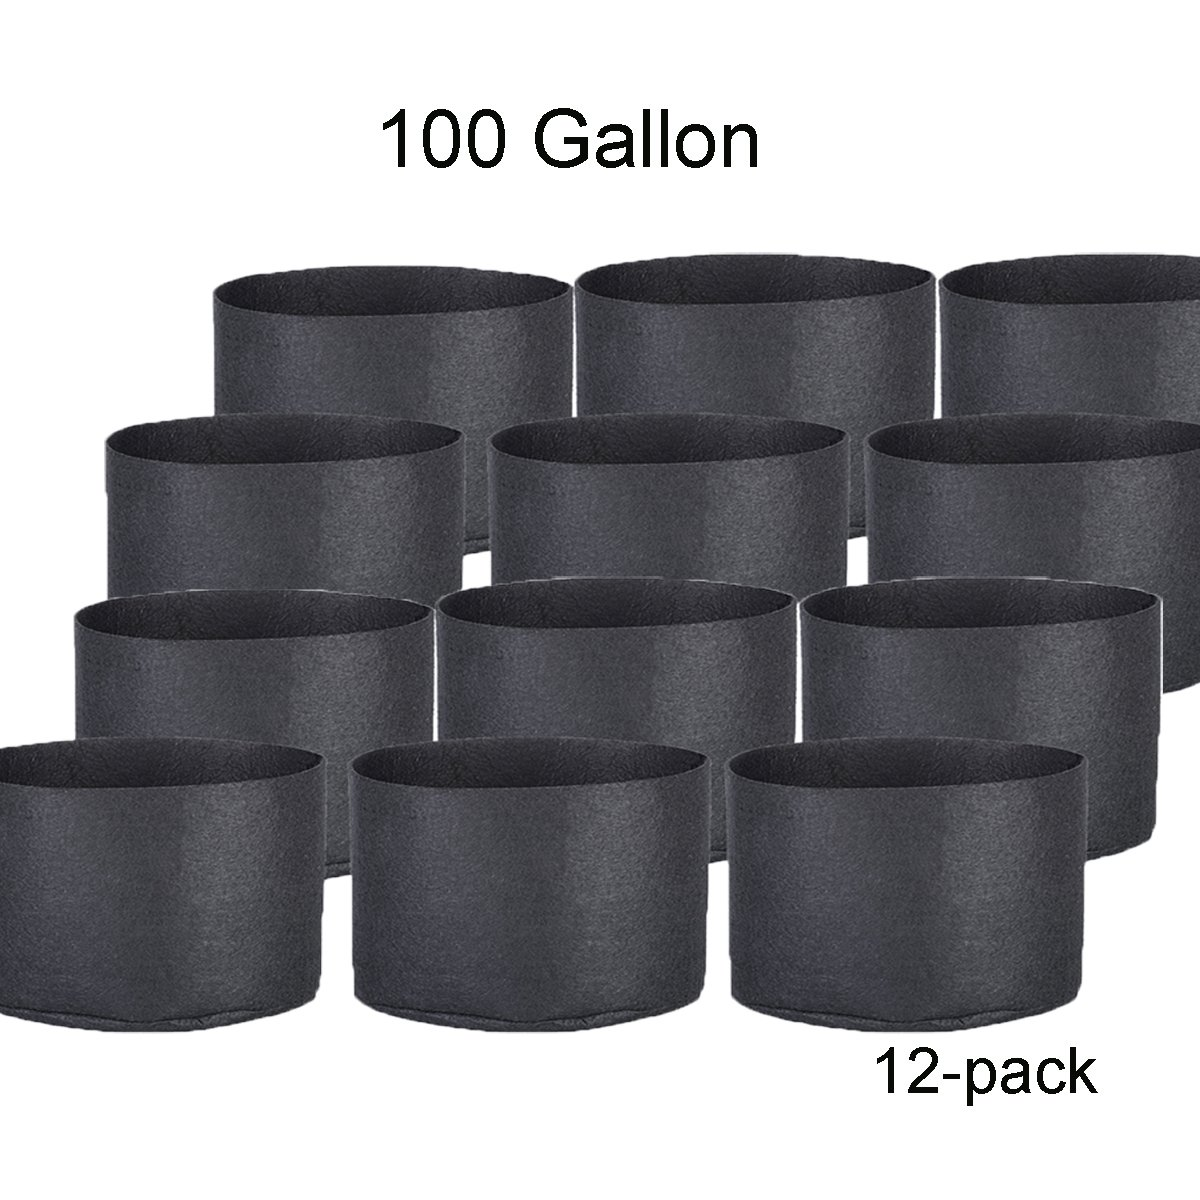 Oppolite 1 2 3 5 7 10 15 20 25 30 Gallon Round Fabric Fabric Aeration Pots Container for Nursery Garden and Planting Grow (100 Gallon/12 Pack)